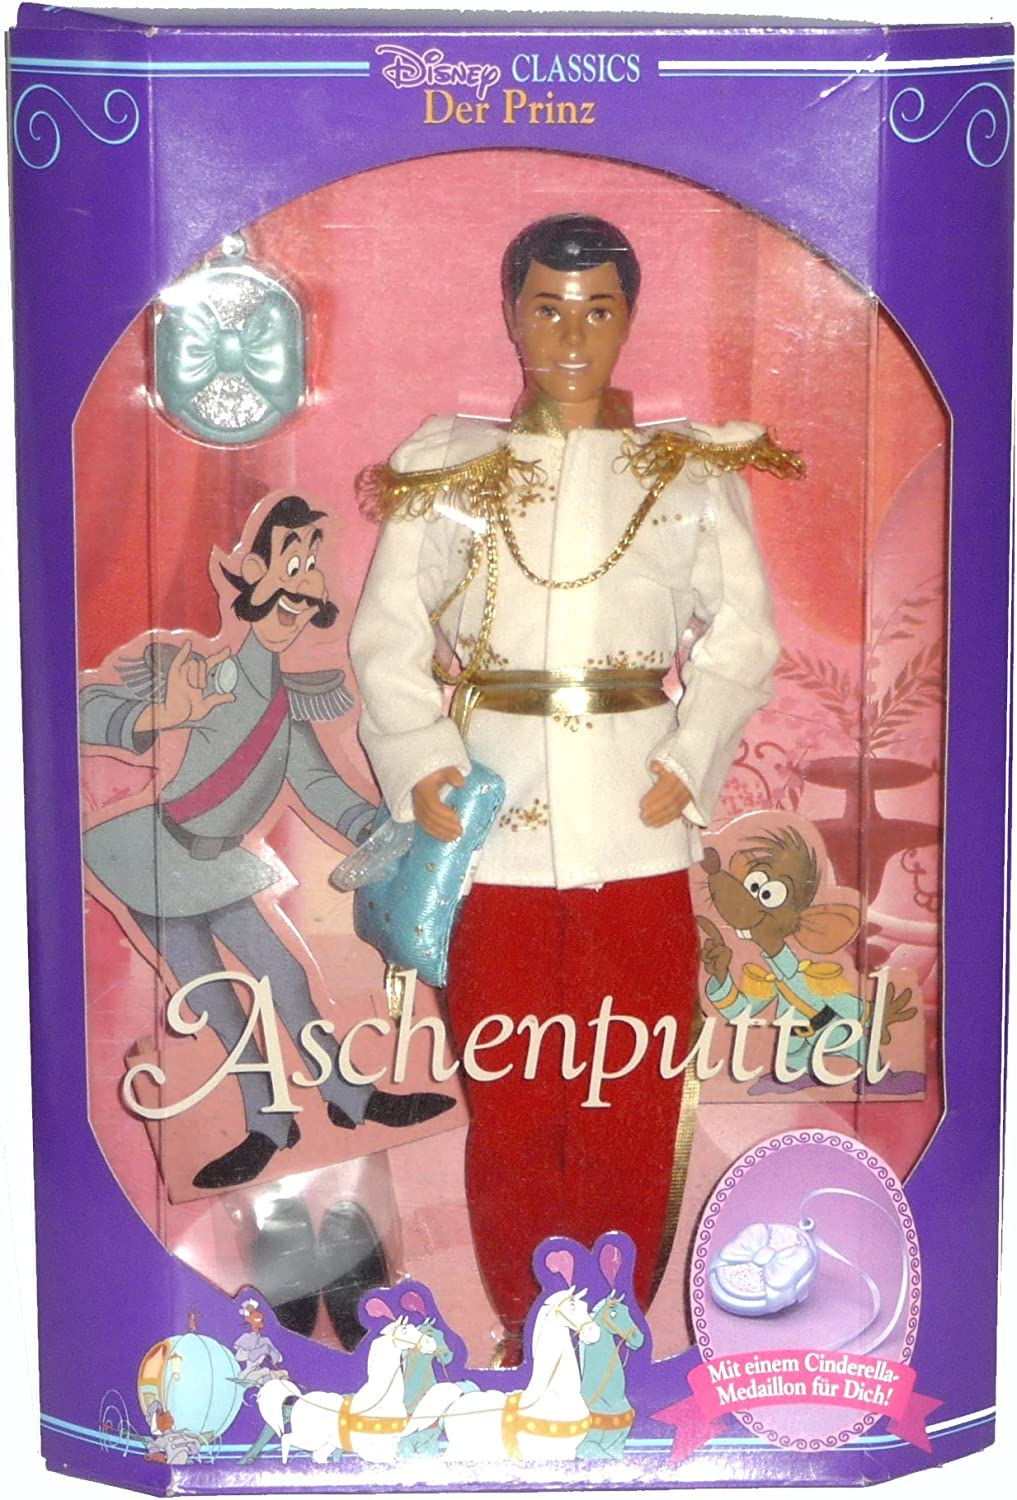 Cinderella Prince Charming Disney Classic with shoes and Locket (1991)